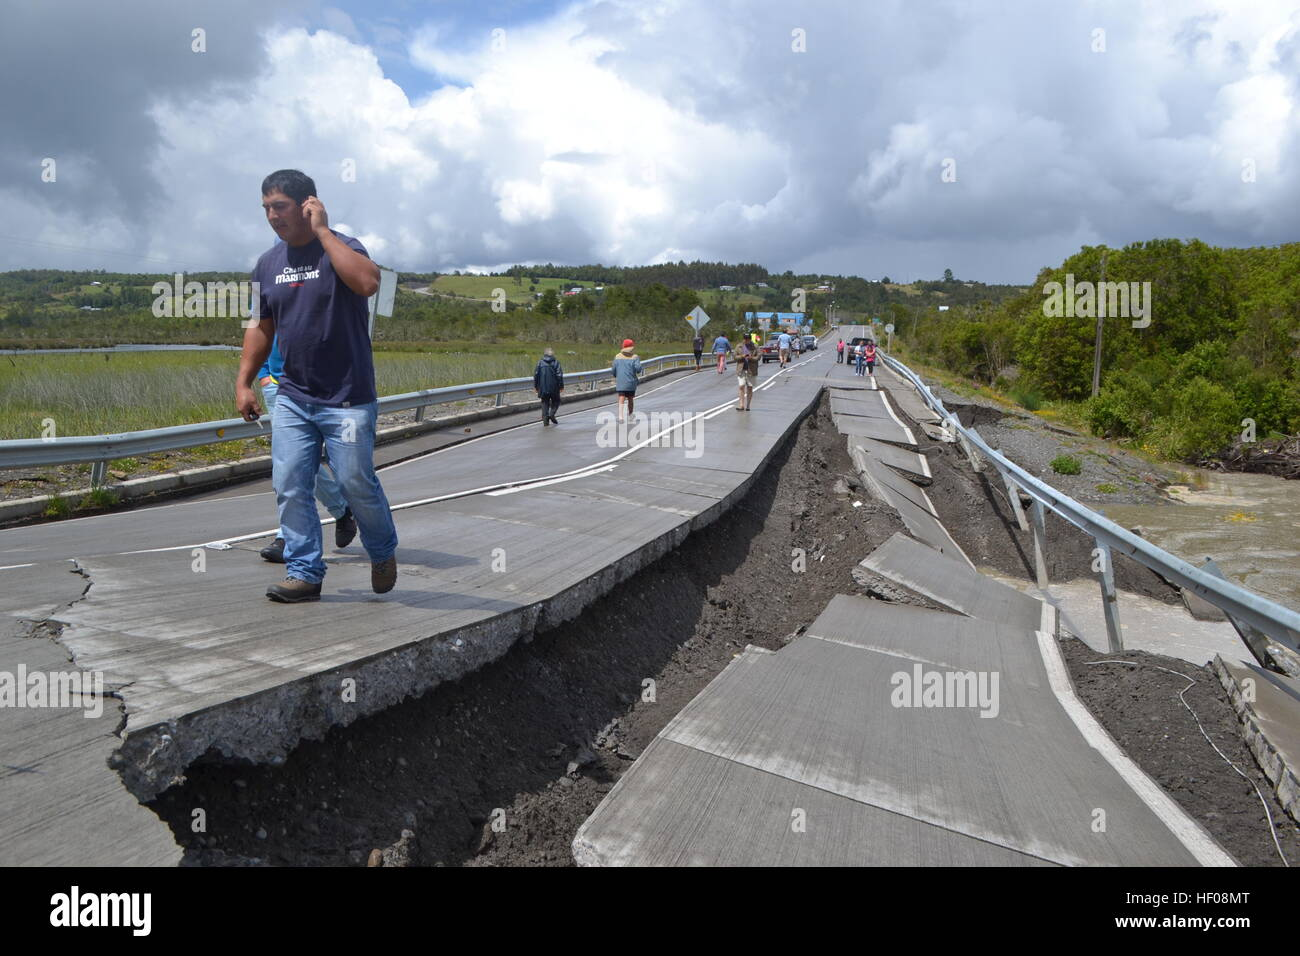 Chiloe province, Chile. 25th December, 2016. People walk on Highway 5 after an earthquake in Chiloe province, Chile, Stock Photo